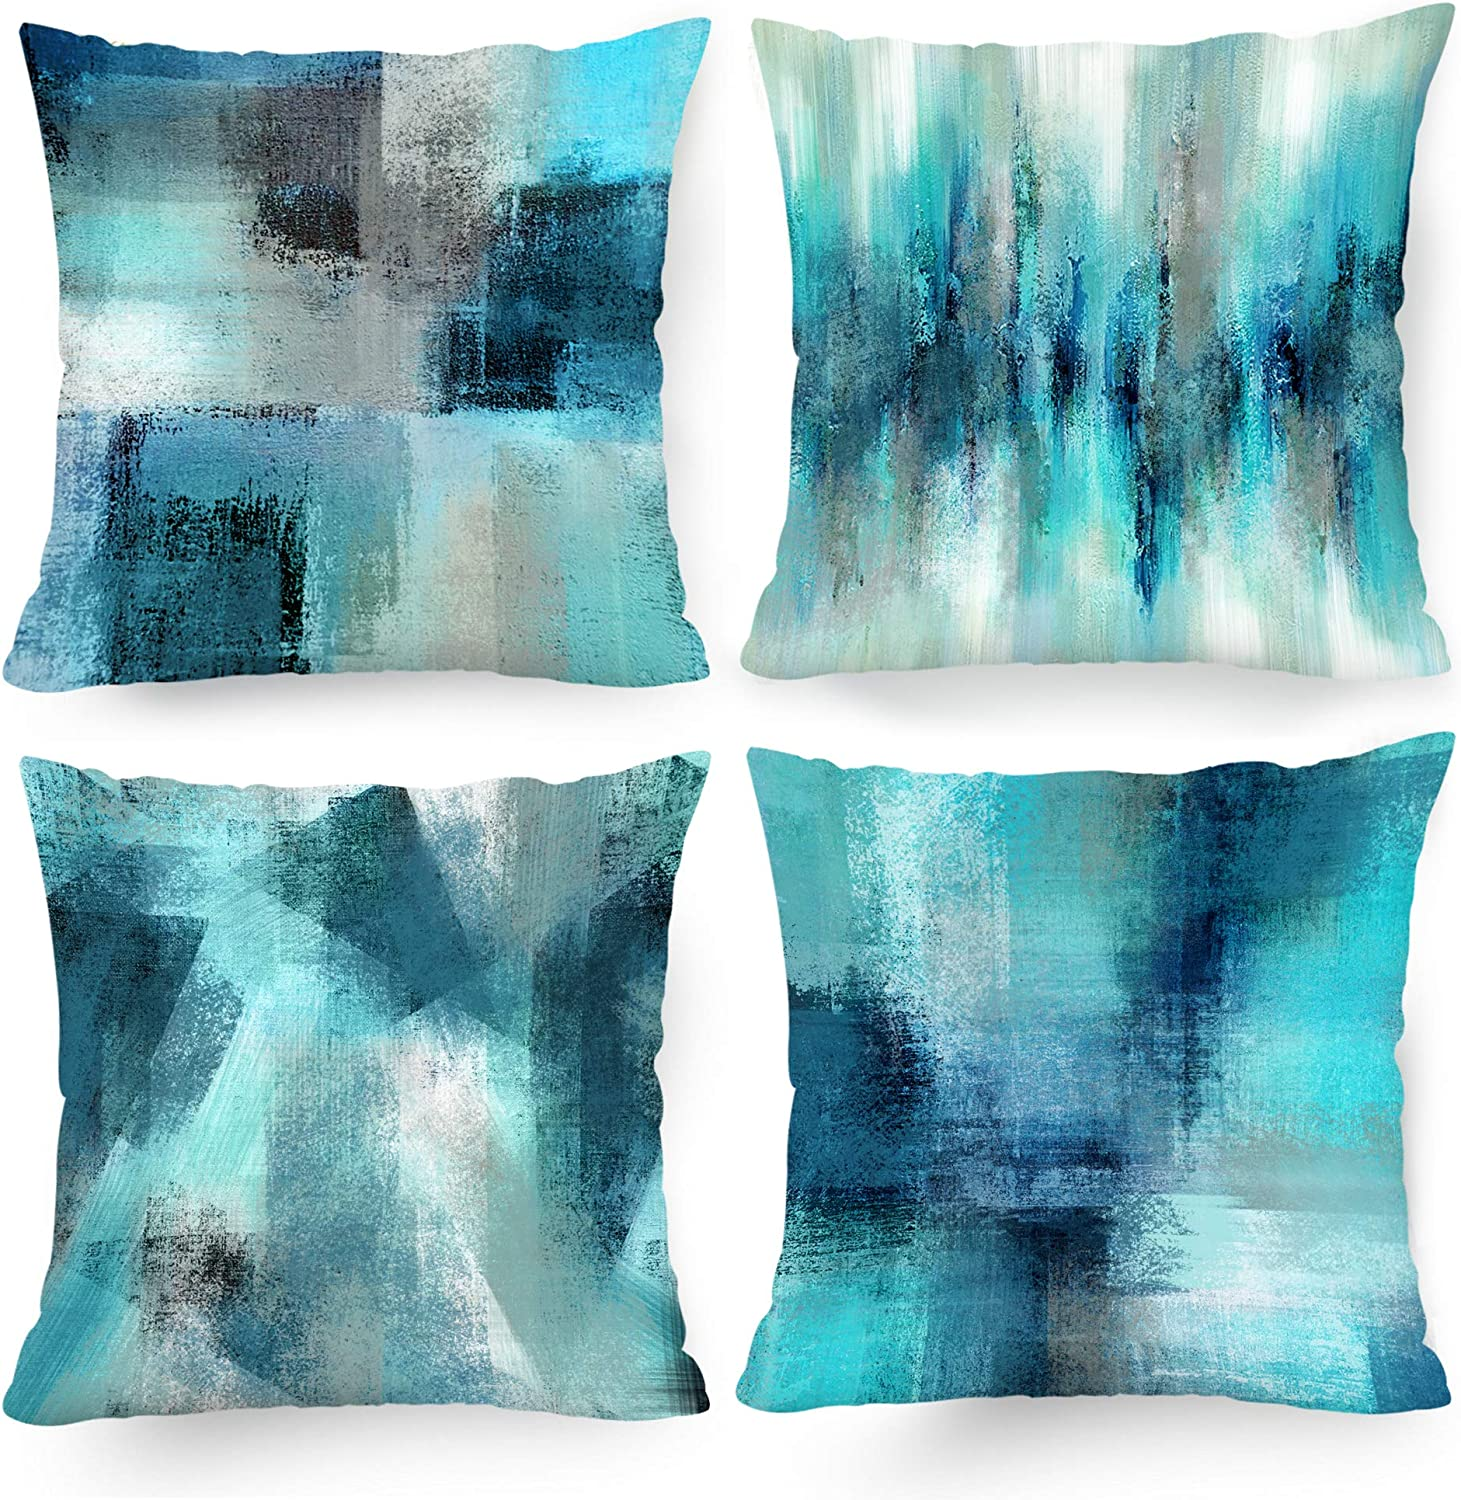 Hexagram Turquoise Grey Decorative Pillow Covers 18 x 18 Inch, Blue Teal and Grey Throw Pillow Covers Set of 4 Soft Polyester Blue Turquoise Cushion Case for Couch Bed Living Room Bedroom Home Decor